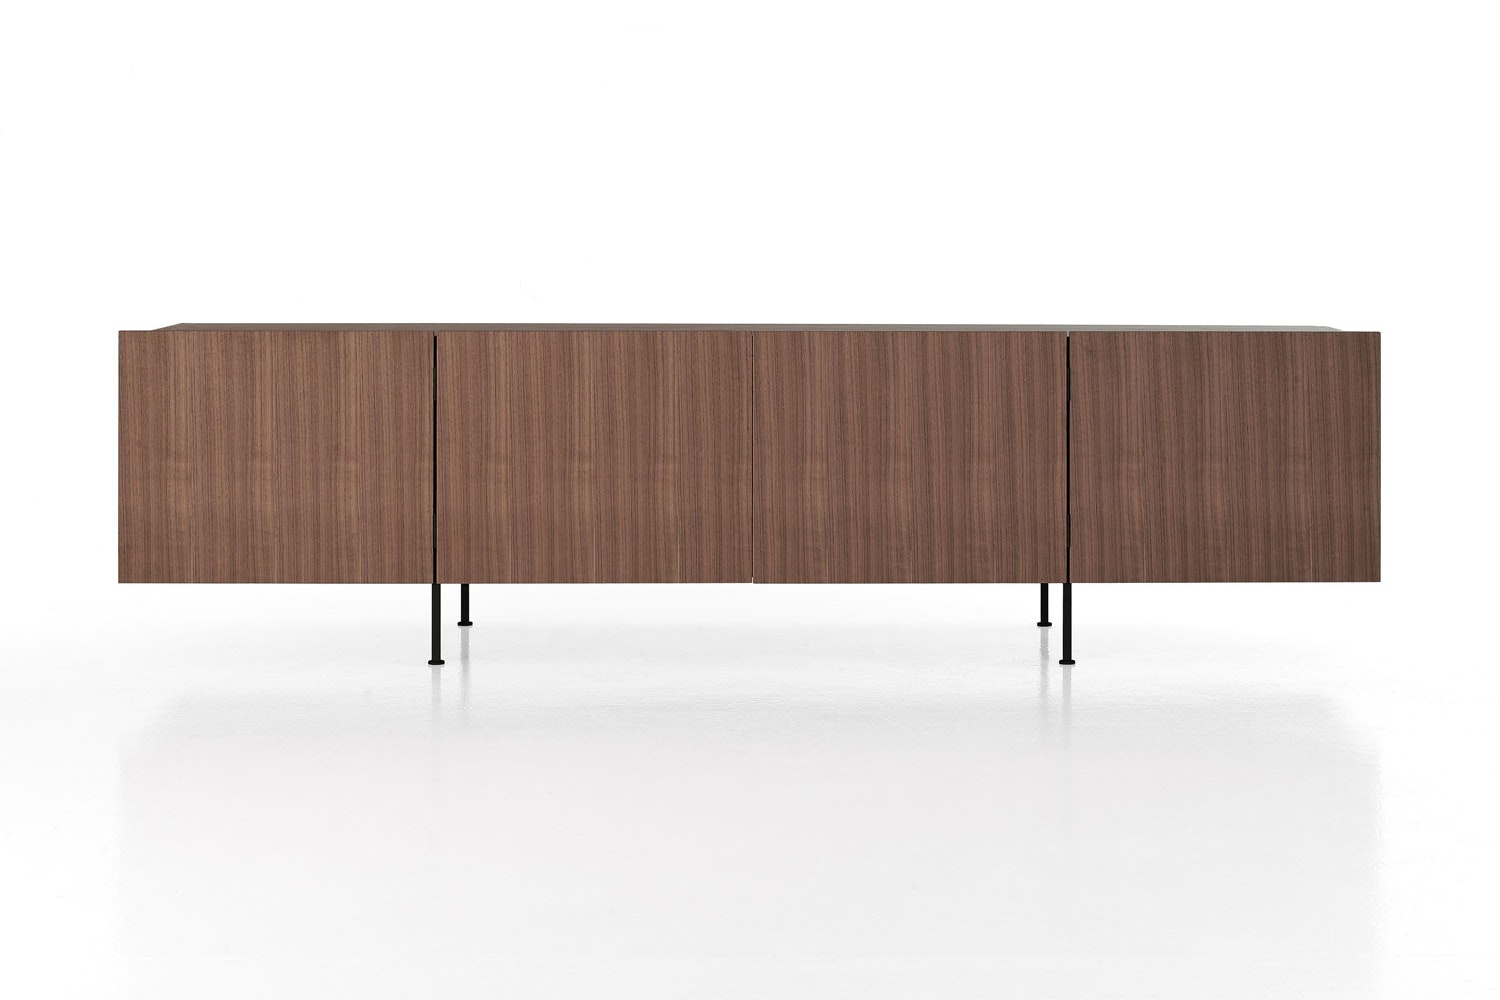 Tiller Storage Unit by Piero Lissoni for Porro